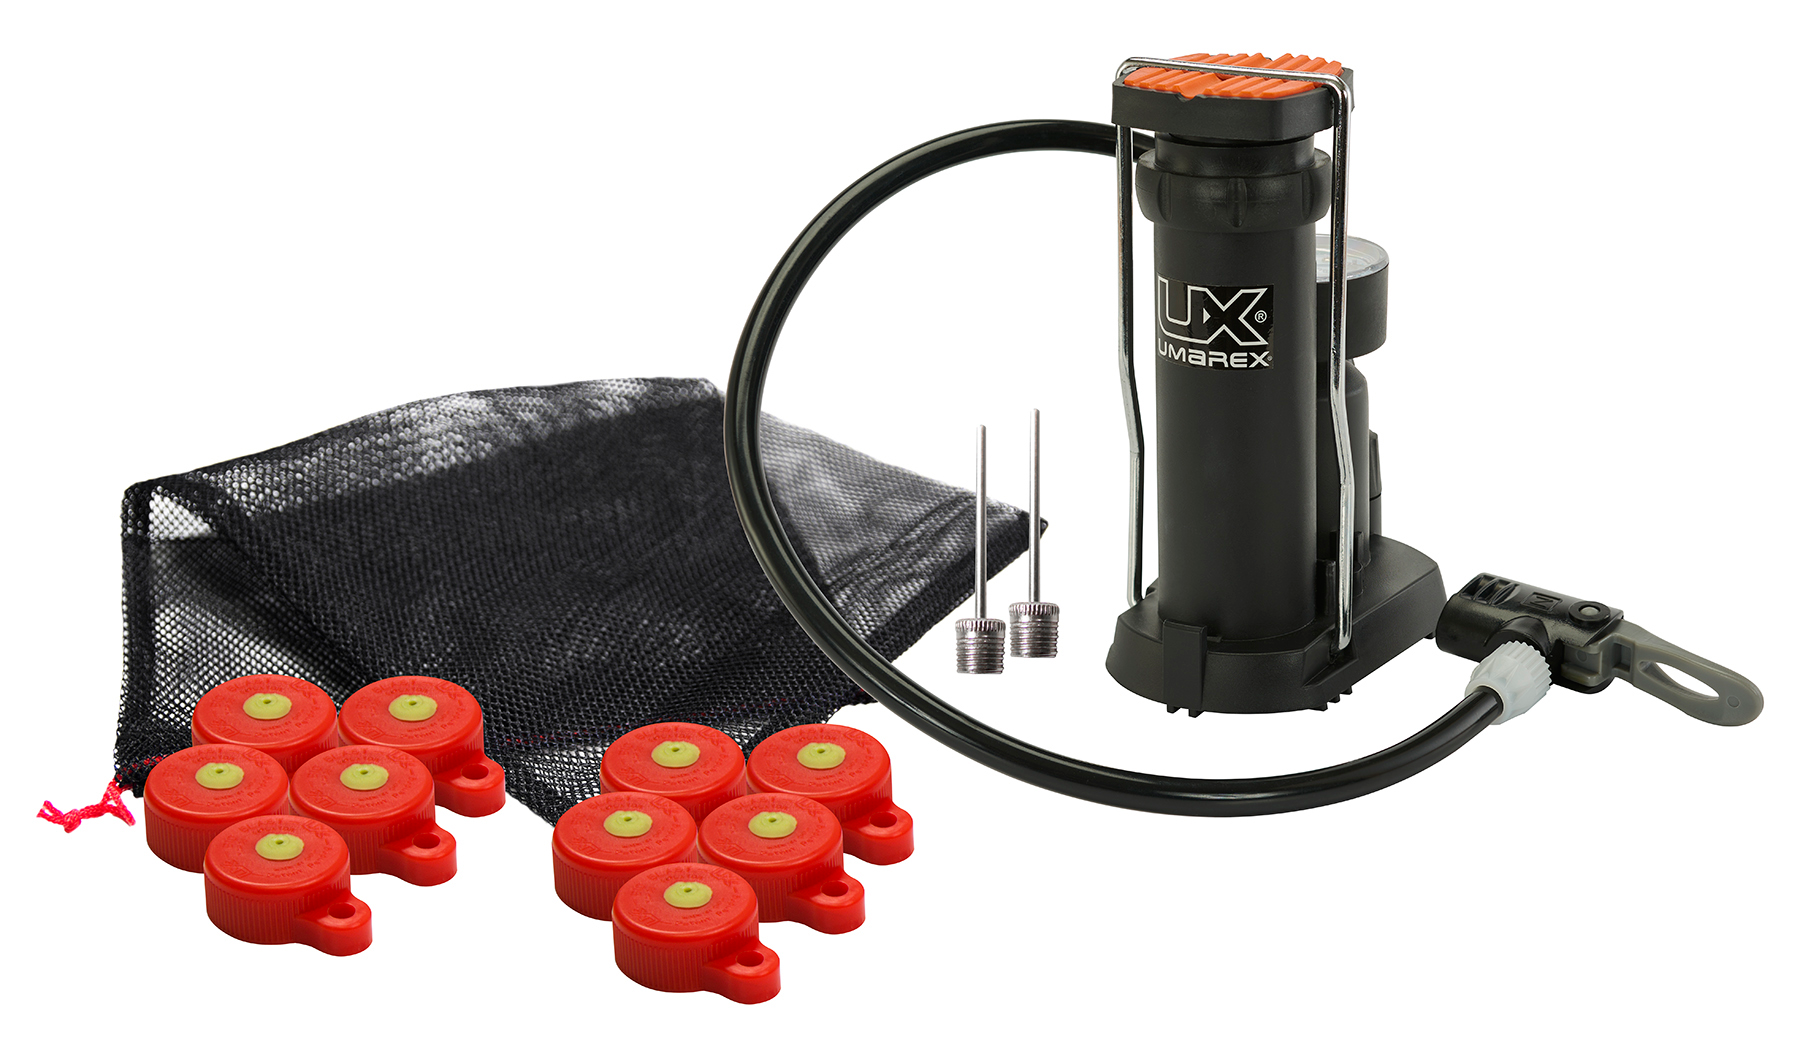 Umarex USA 2211188 Big Blast Cap Target Inflator with Foot Pump